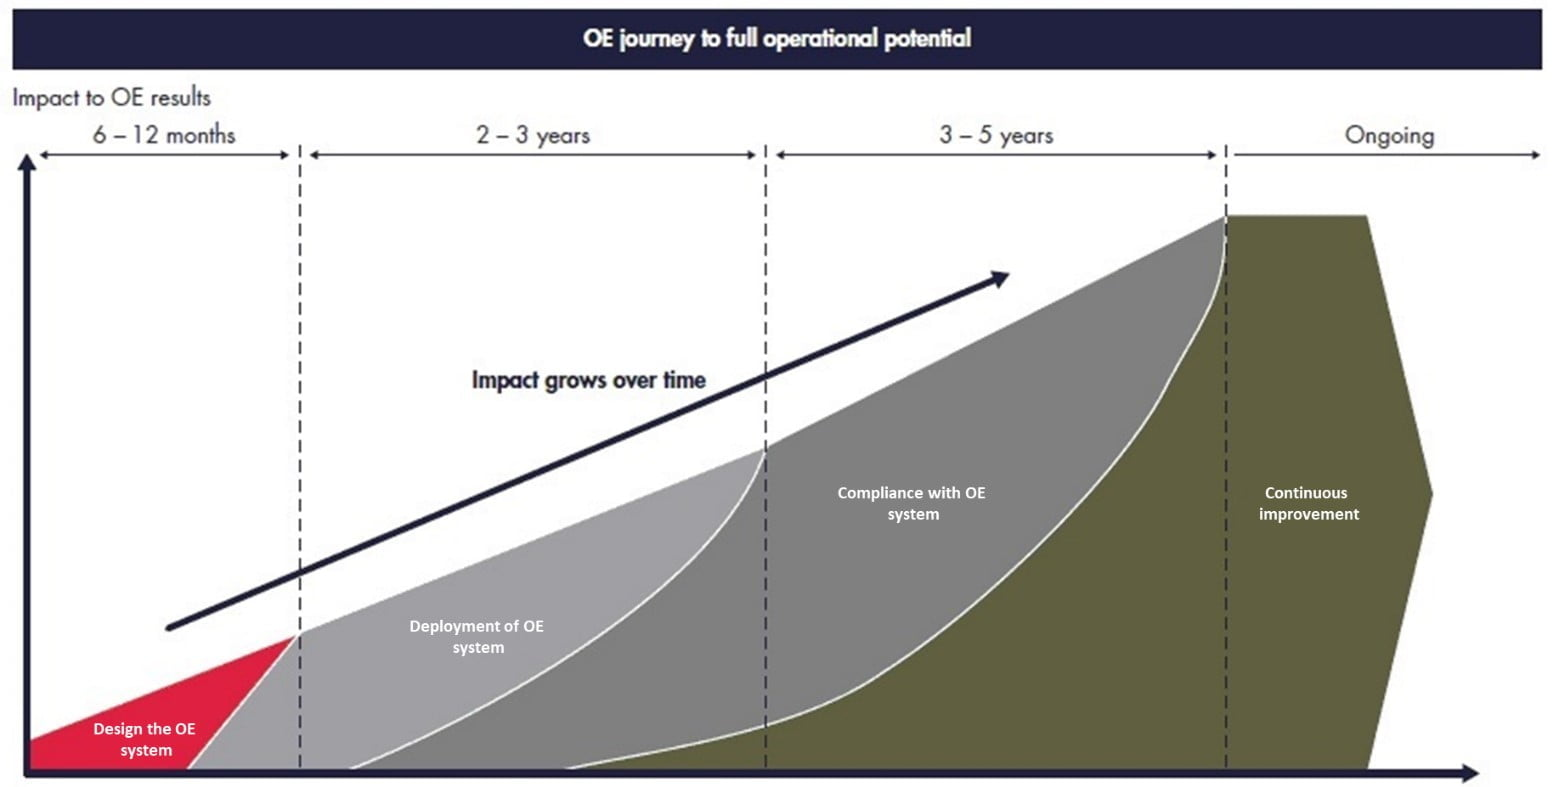 OE journey to full operational potential